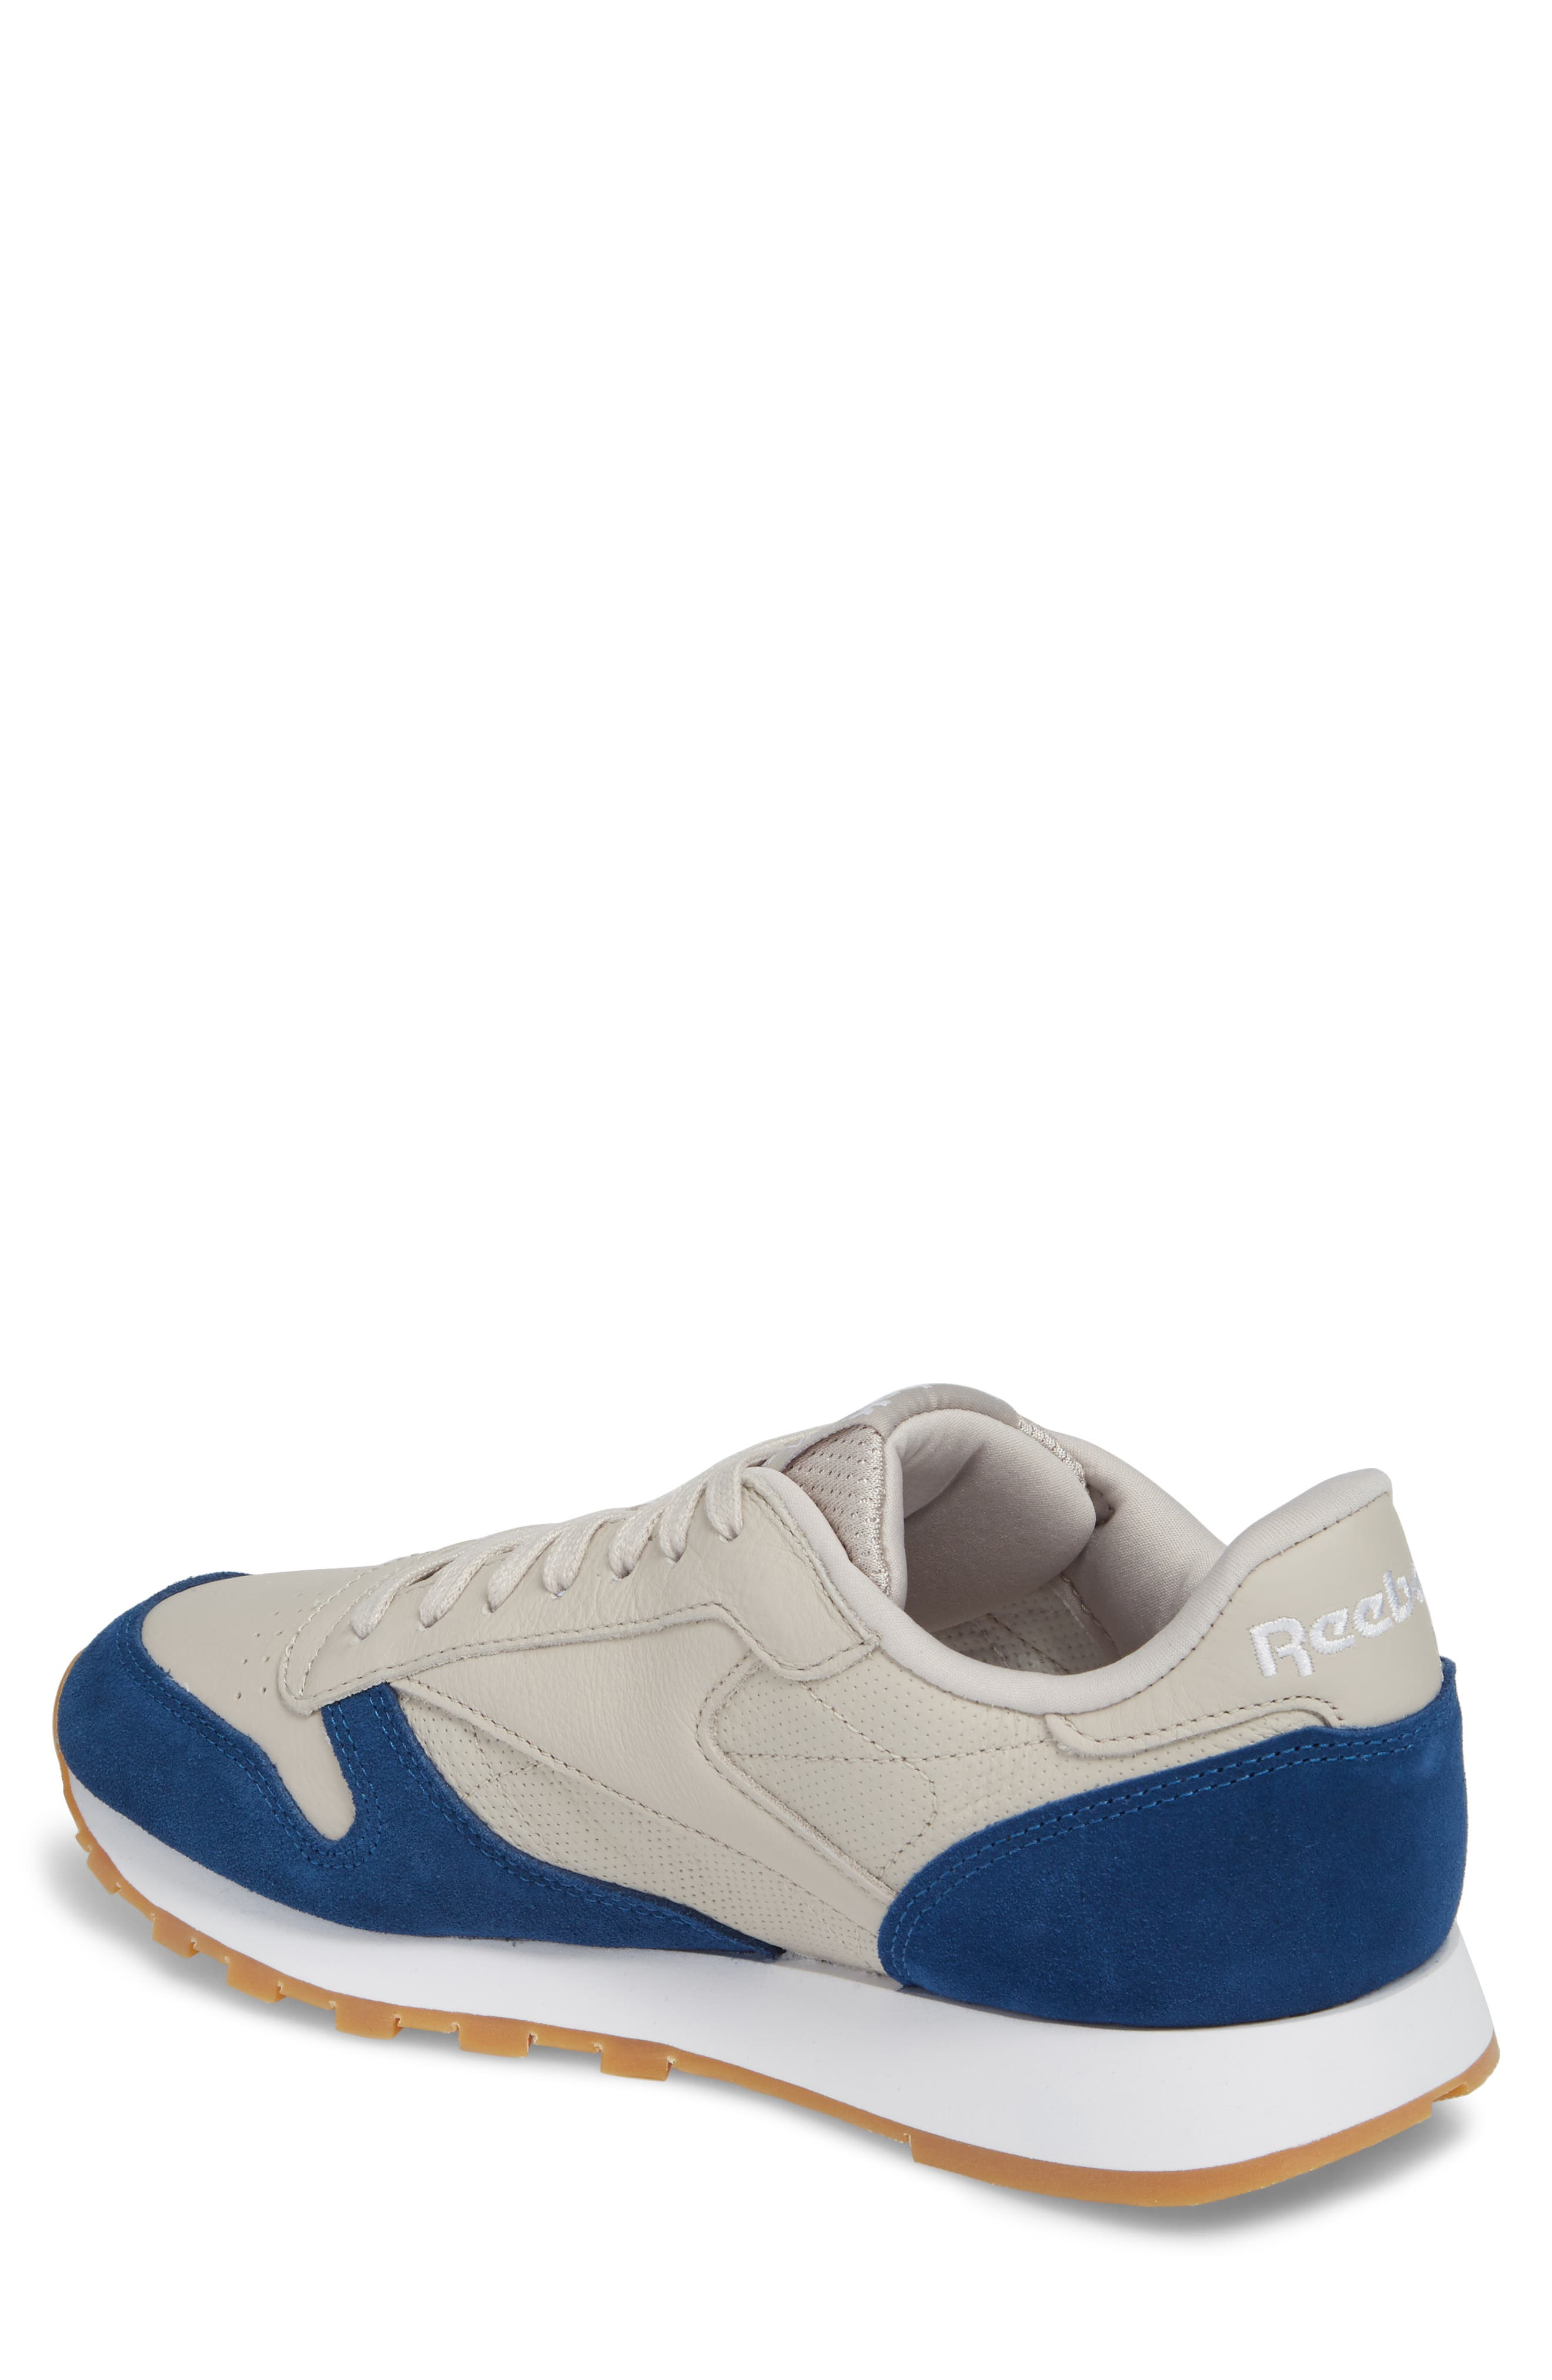 Classic Leather GI Sneaker,                             Alternate thumbnail 2, color,                             Sand Stone/ Washed Blue/ White